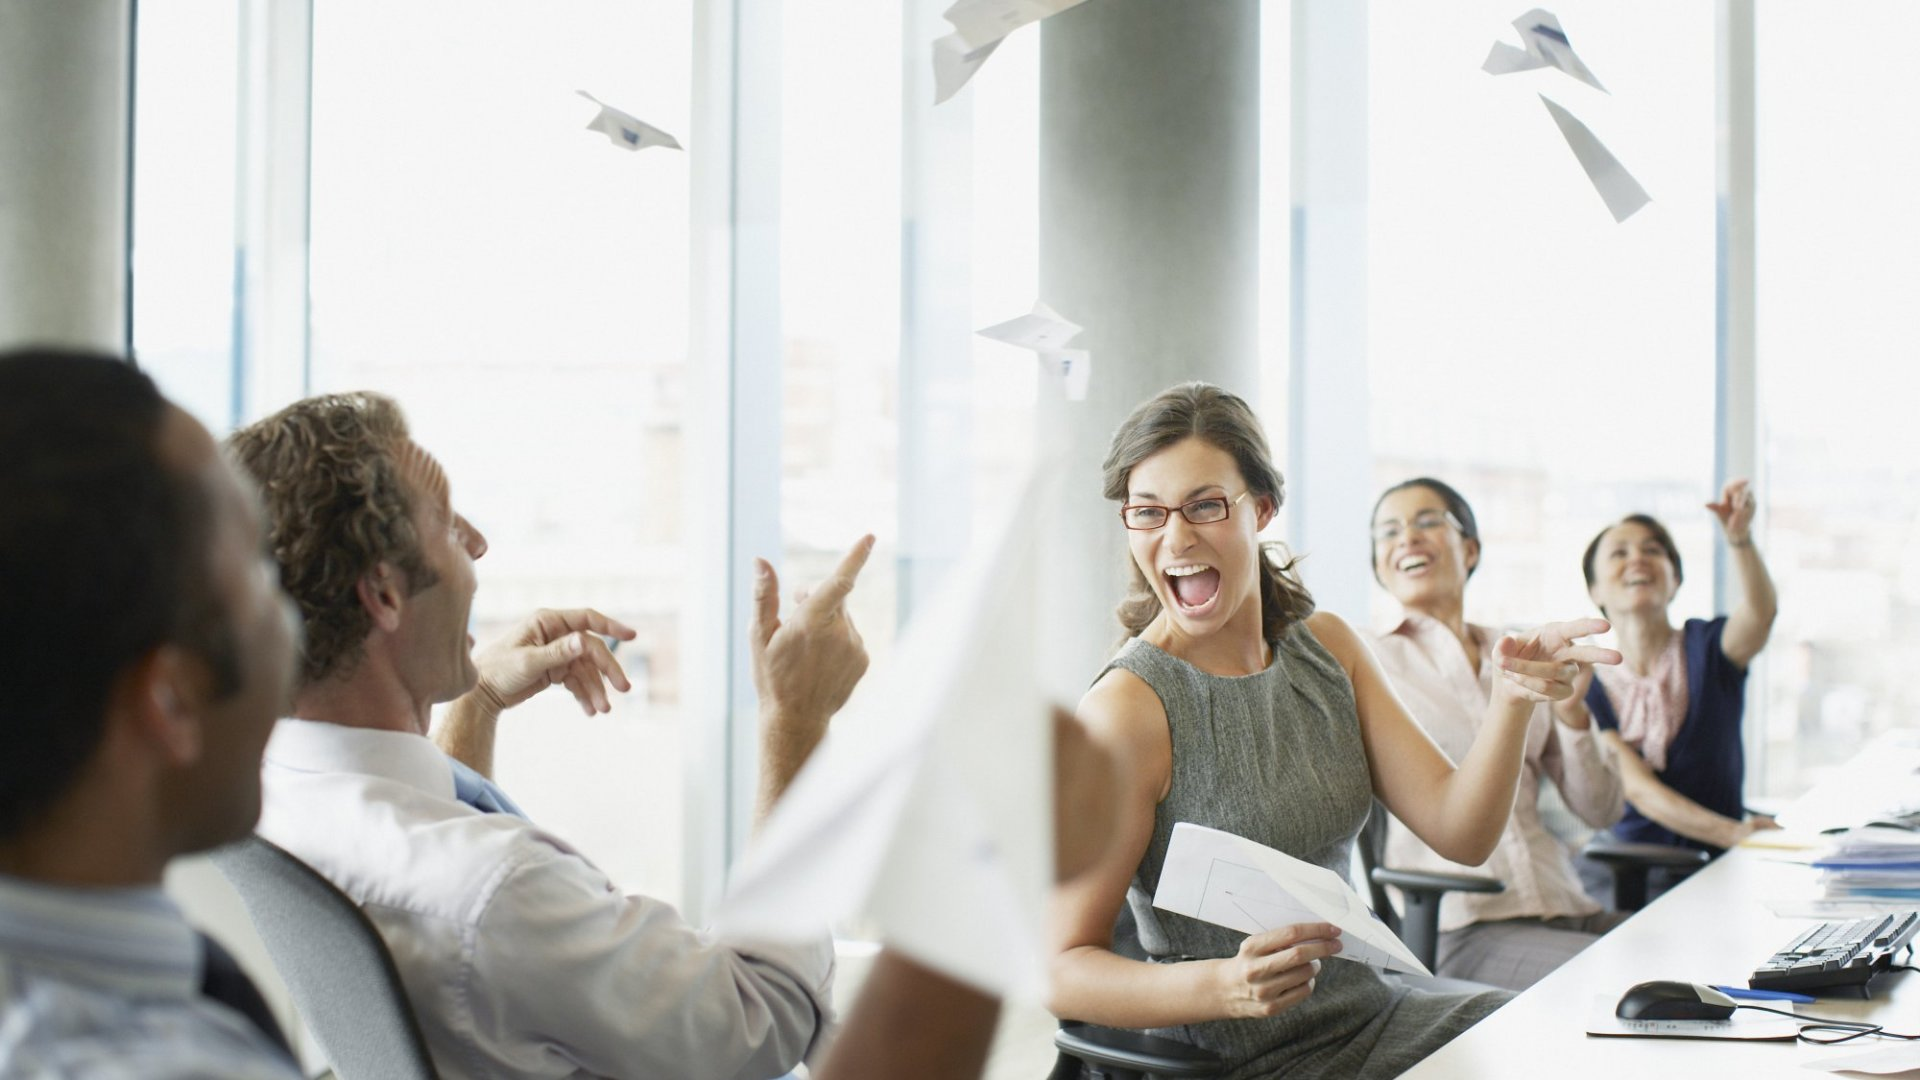 Why You Should Encourage Your Employees to Develop an Entrepreneurial Mindset